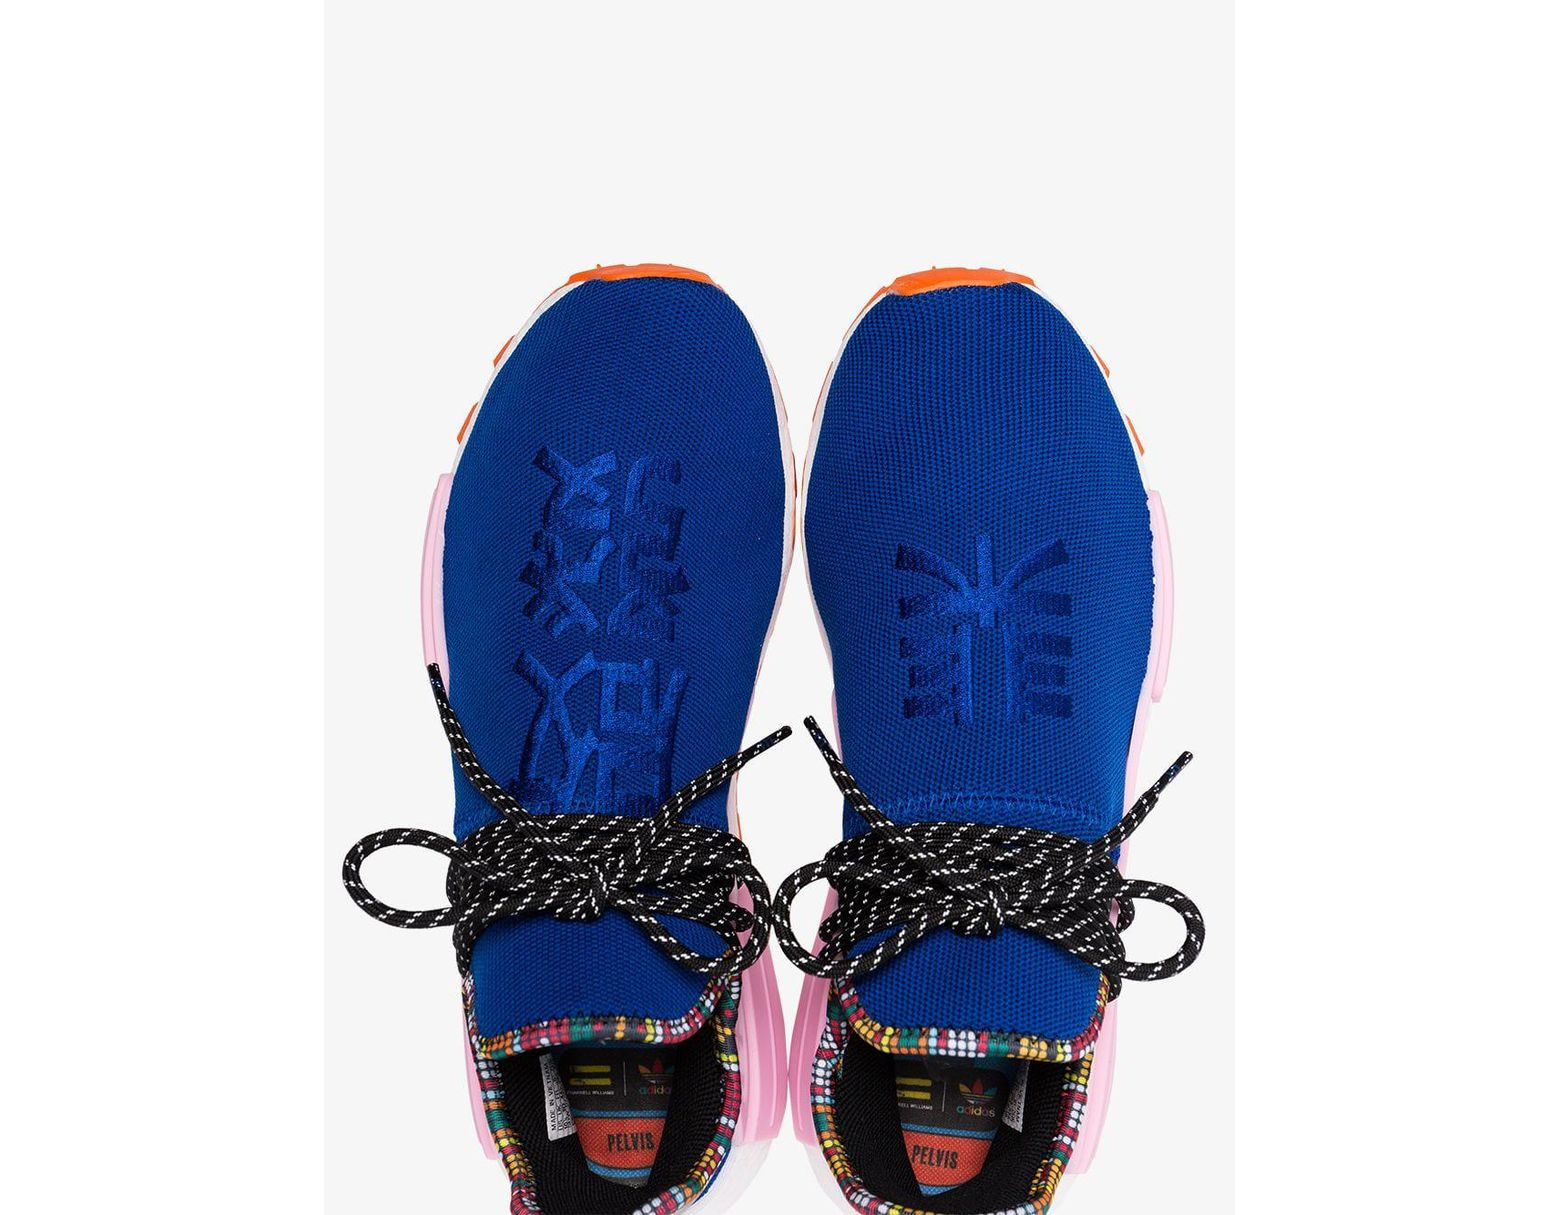 5b24b5fd0 Lyst - adidas X Pharrell Williams Blue Human Body Nmd Sneakers in Blue for  Men